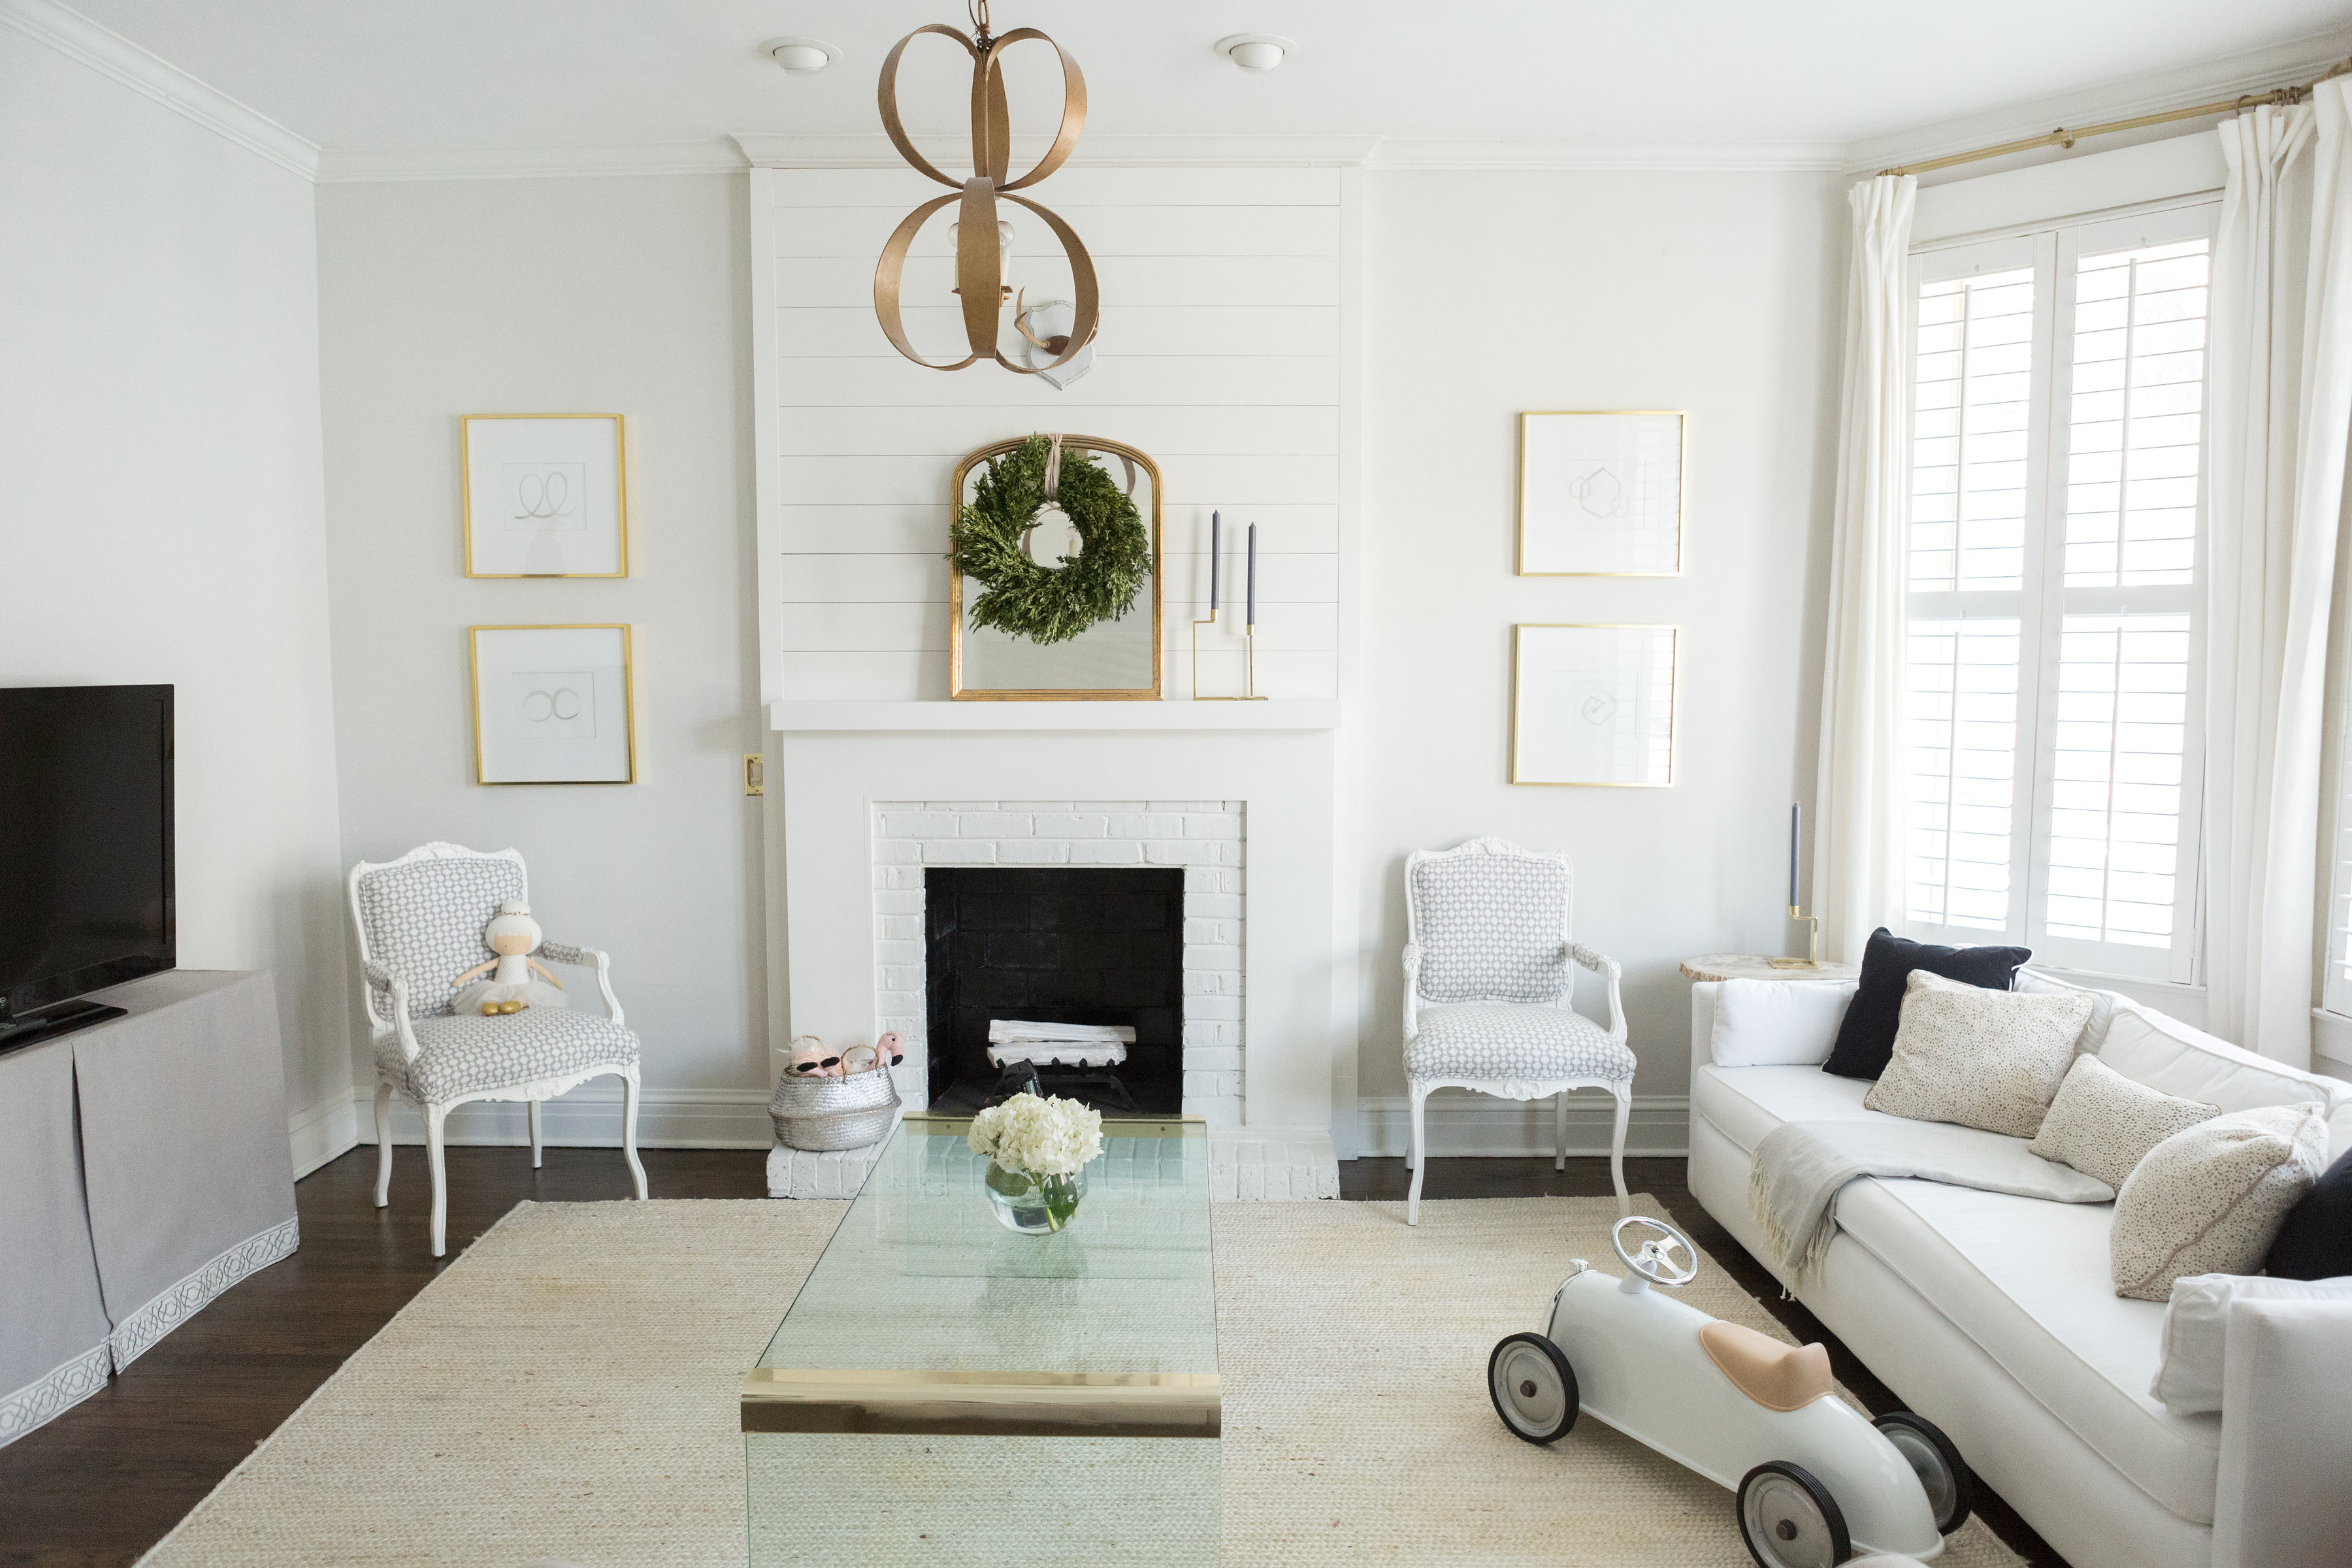 Delicieux Since We Last Checked In With Interior Designer Kaylan Kane Of Olive Juice  Interiors, Sheu0027s Become A Mama To Daughter Zella Rose, Now A Busy Toddler,  ...